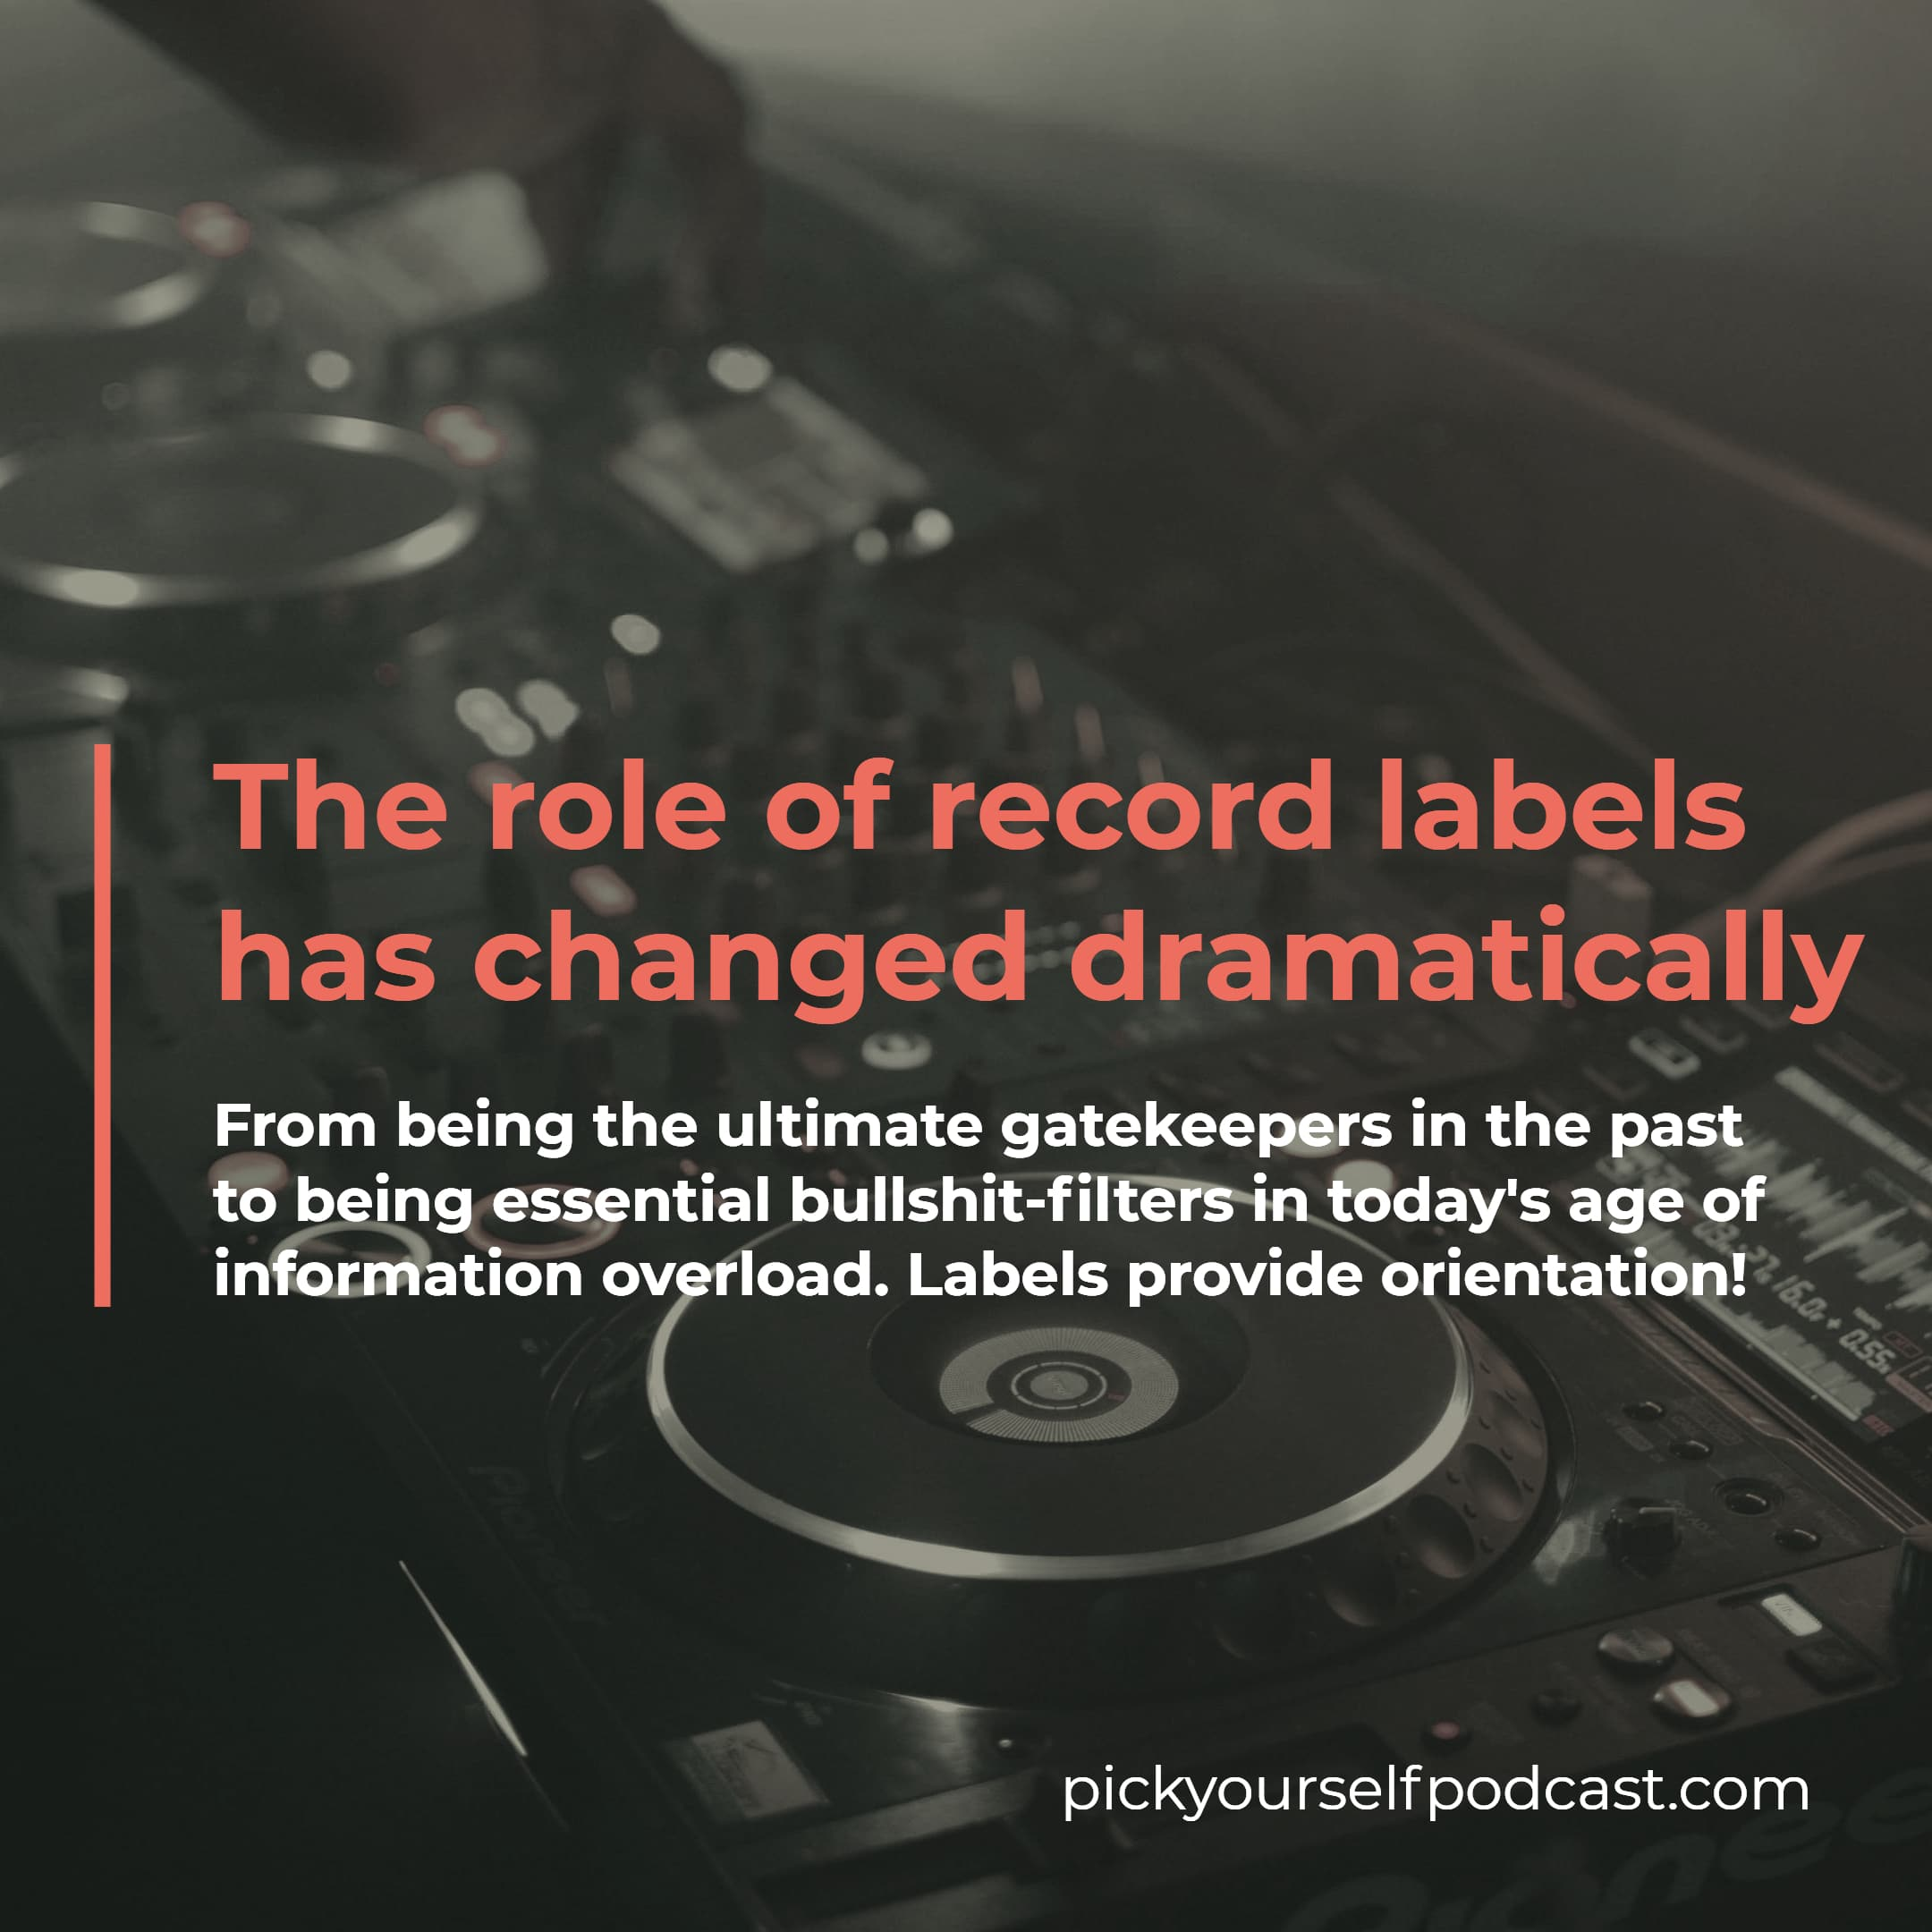 Are record labels still relevant visual 01. The role of labels has changed dramatically. From being gate-keepers to being bullshit-filters.